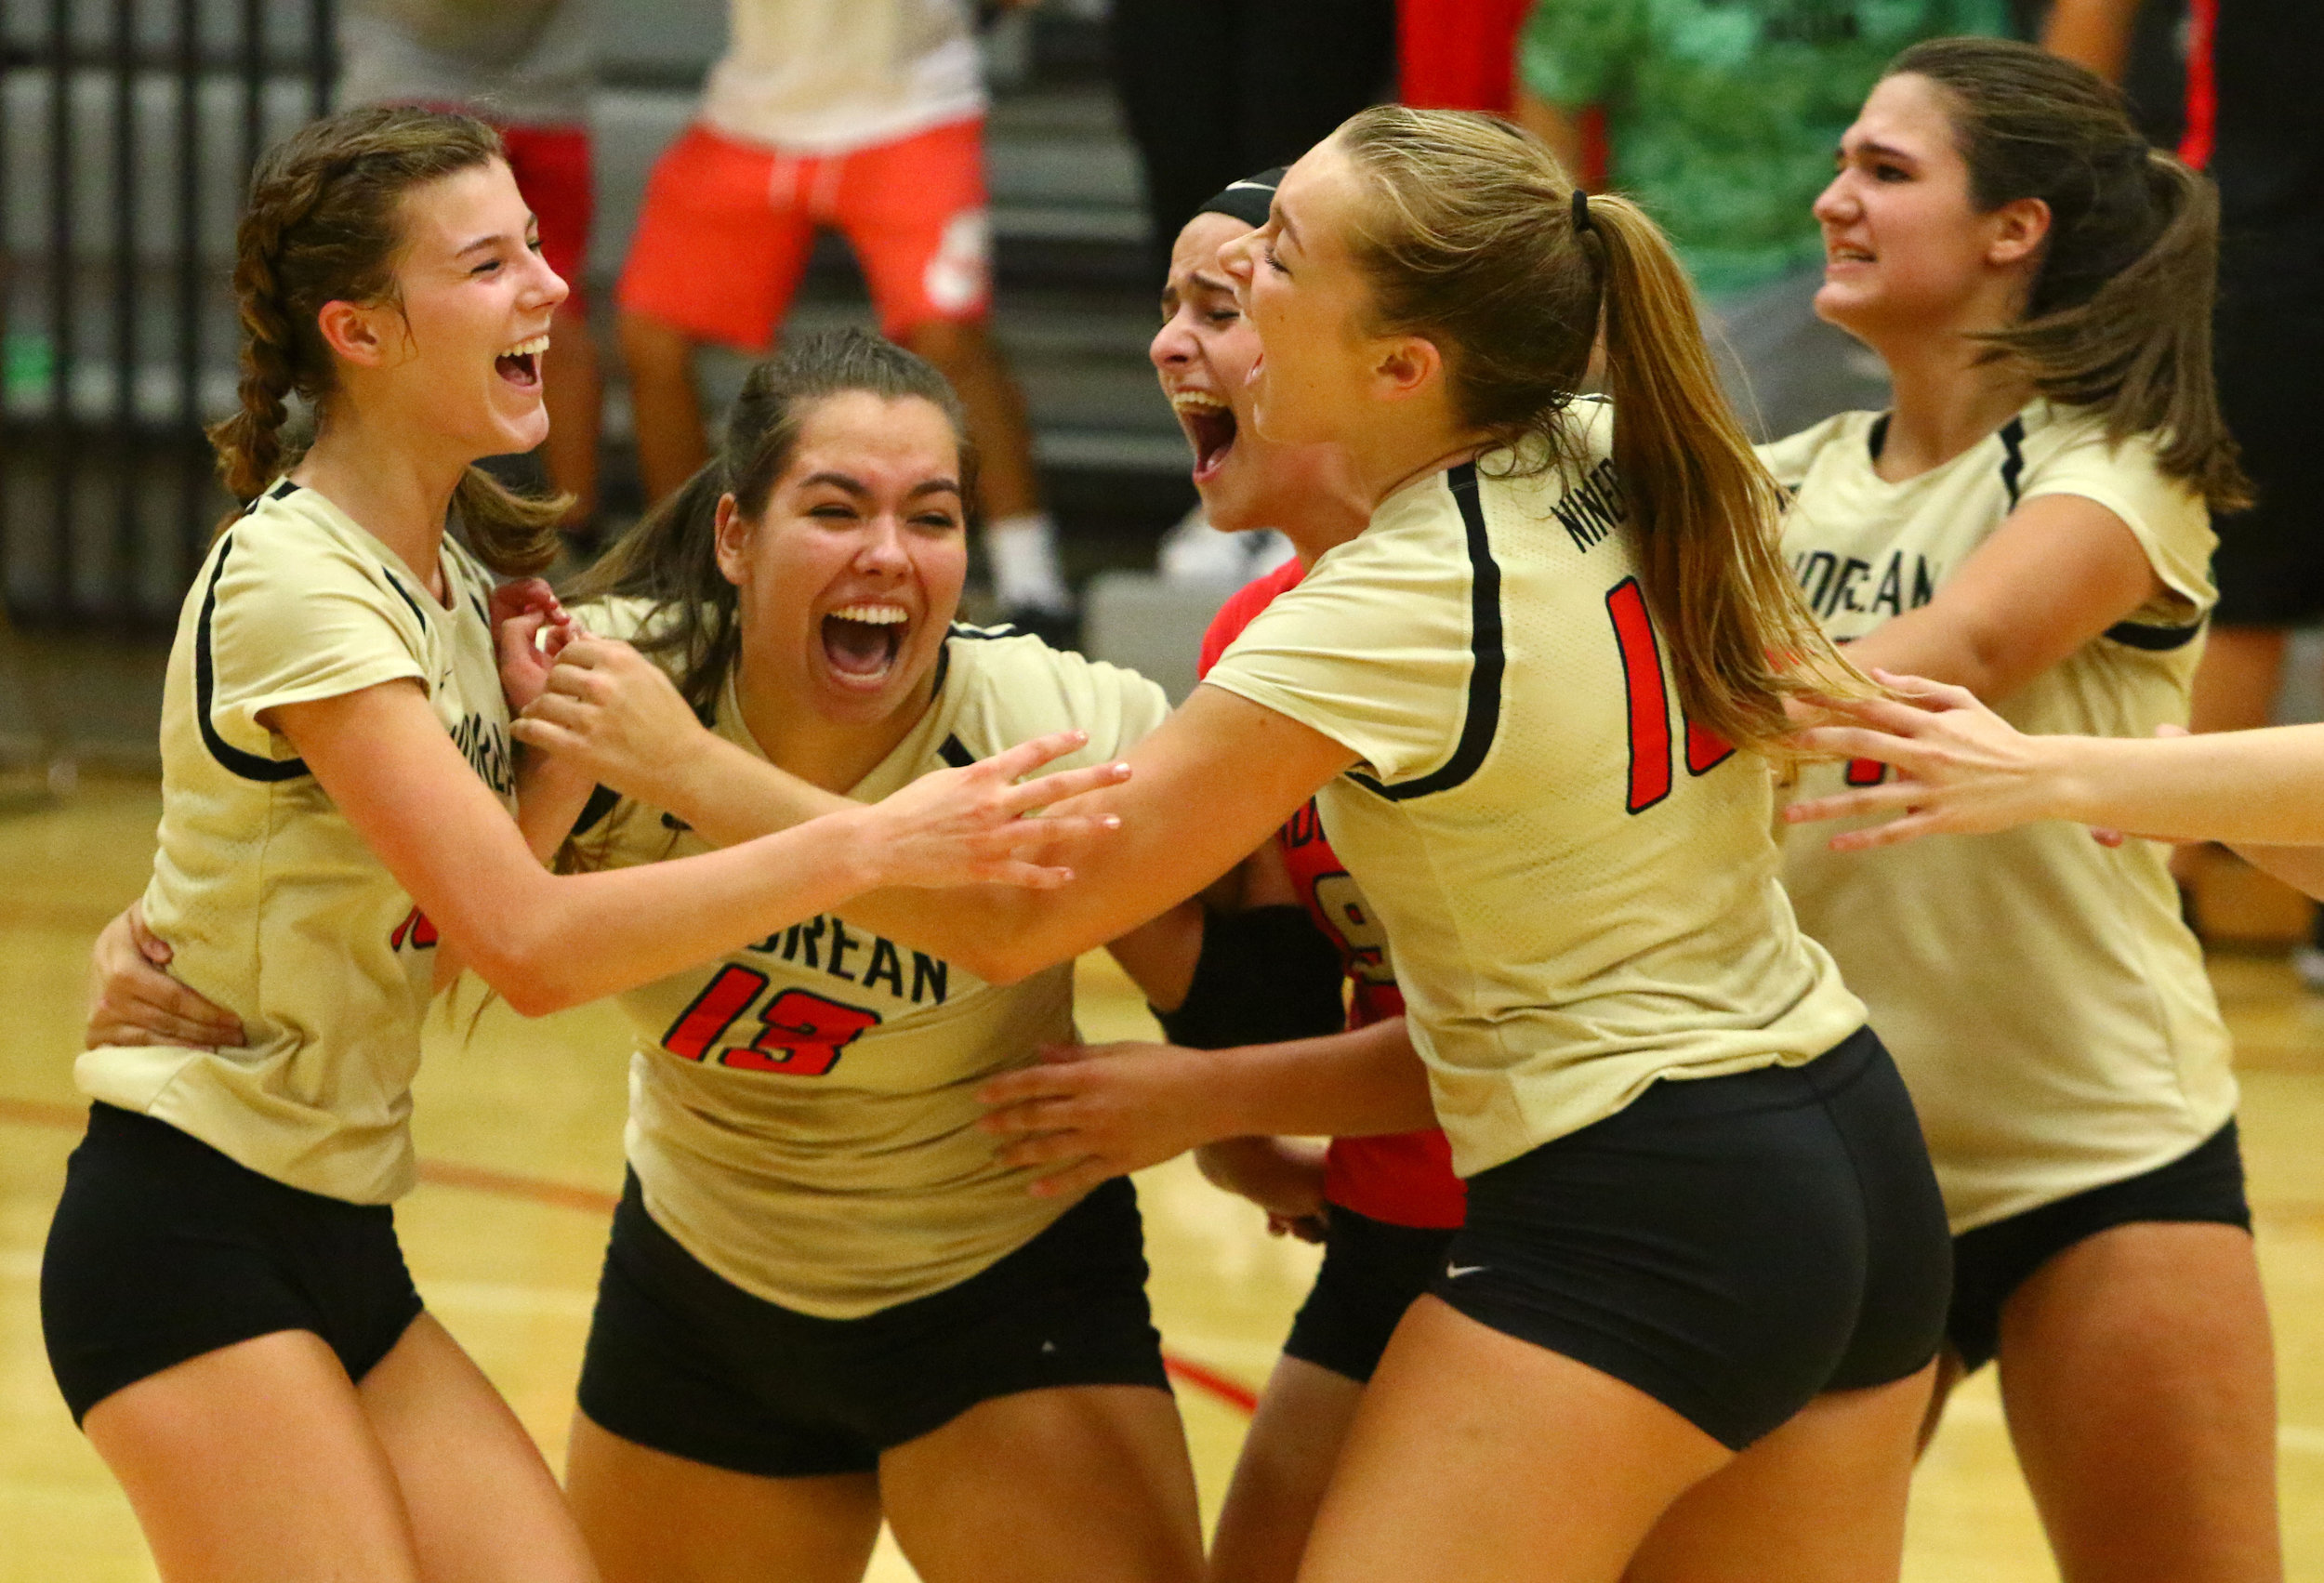 Andrean players react after scoring against Bishop Noll in Merrillville.